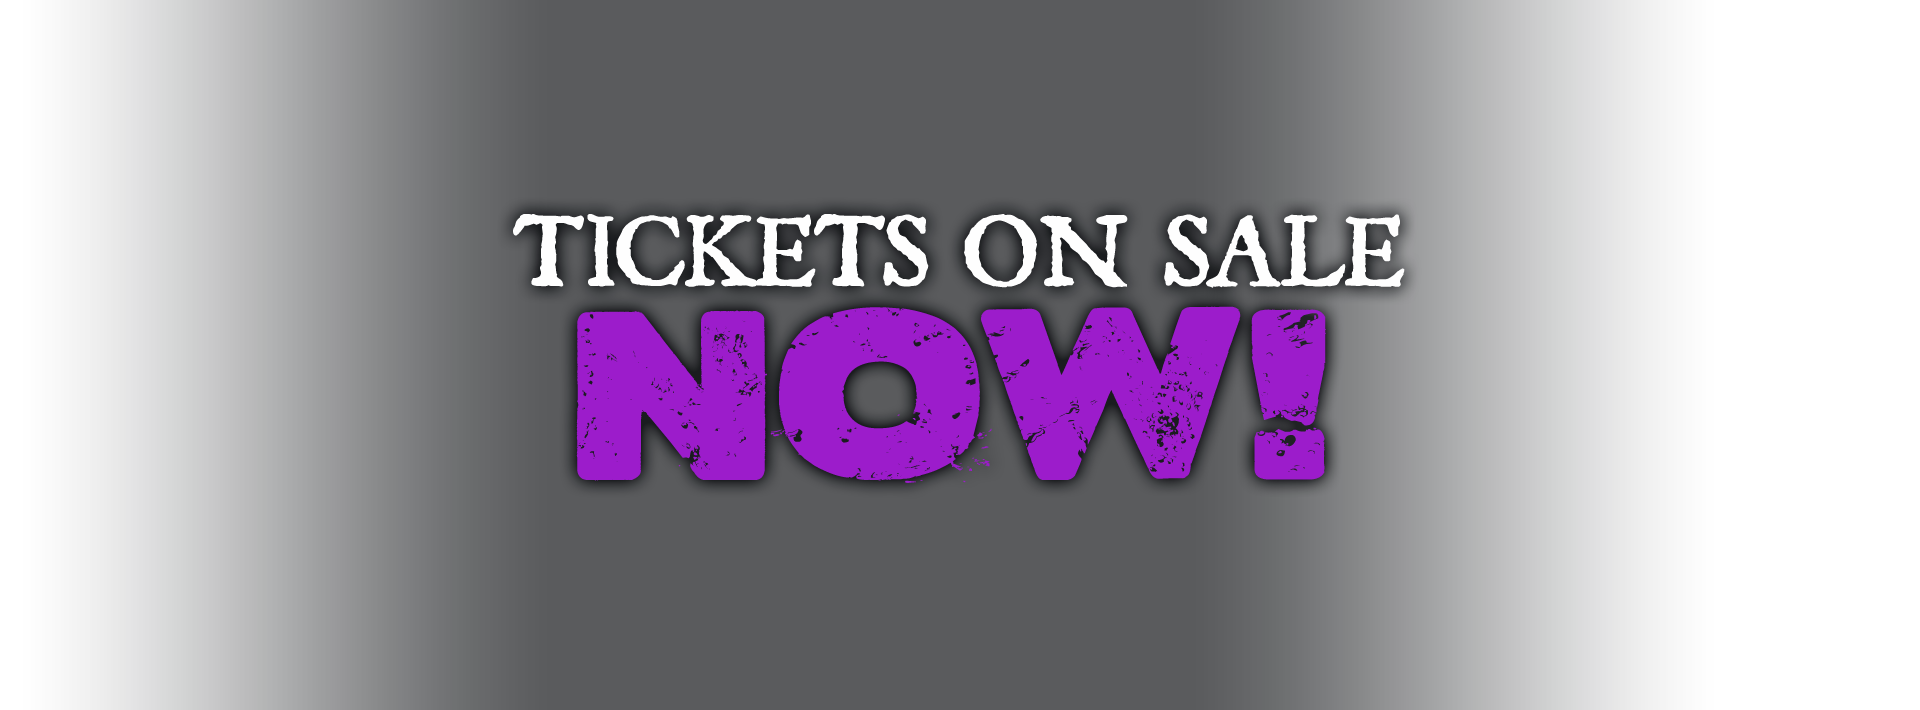 Tickets-on-sale-now!